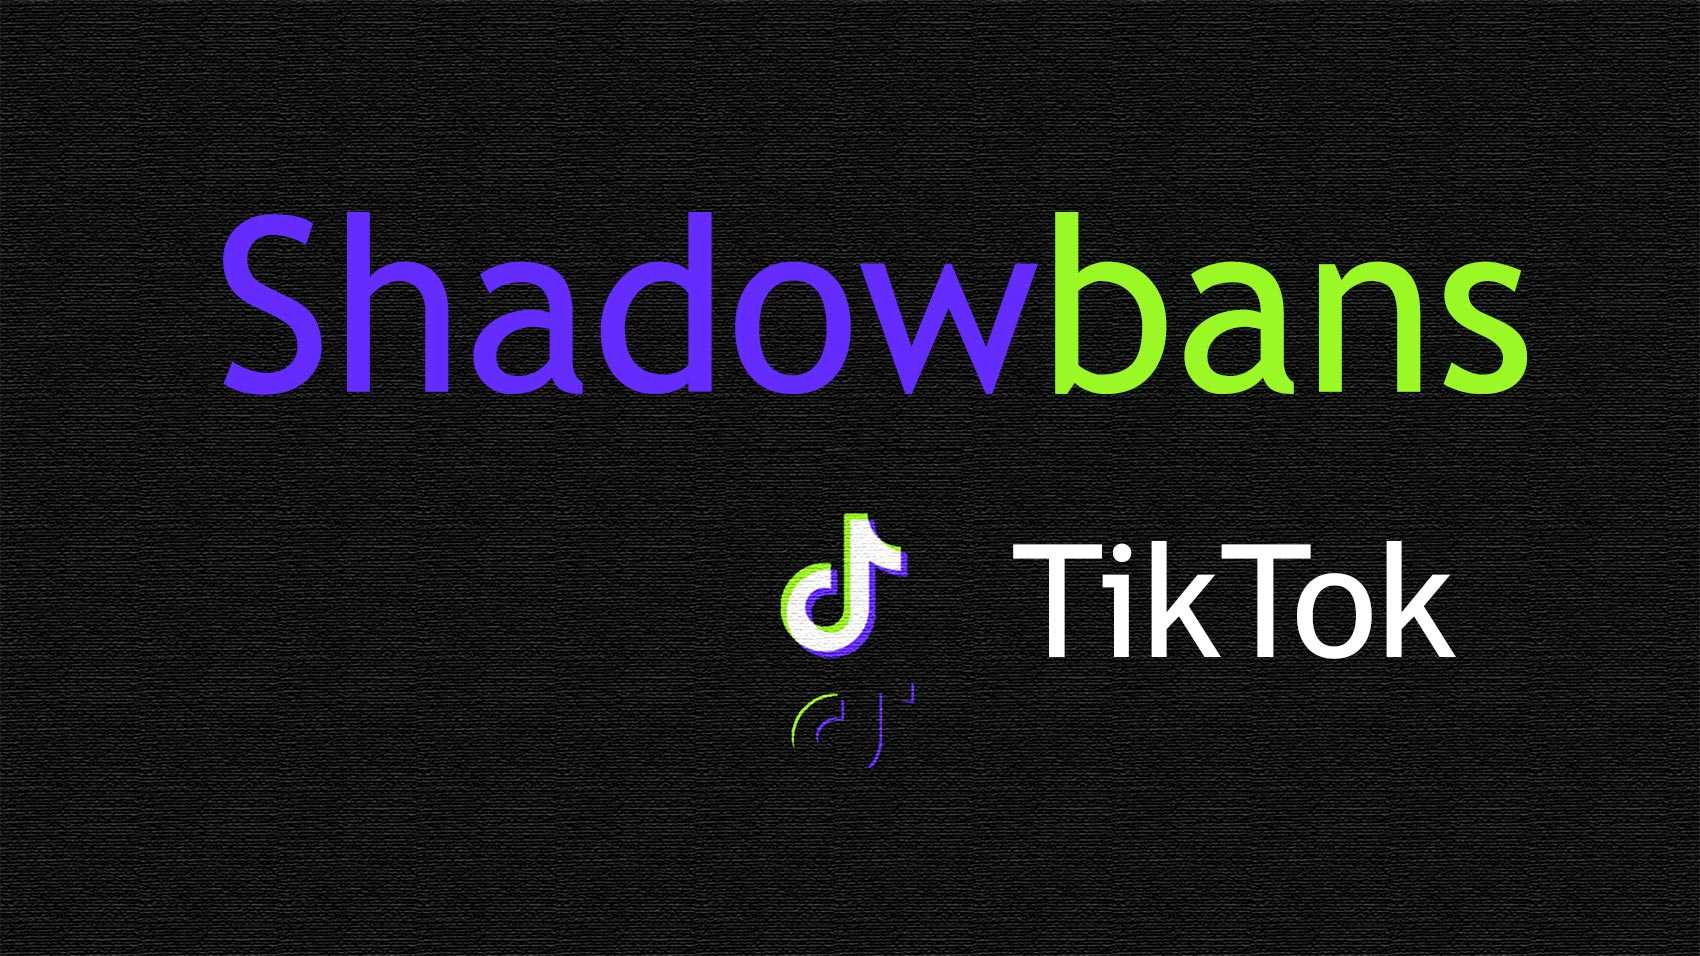 TikTok shadowbans: How to check and get unshadowbanned